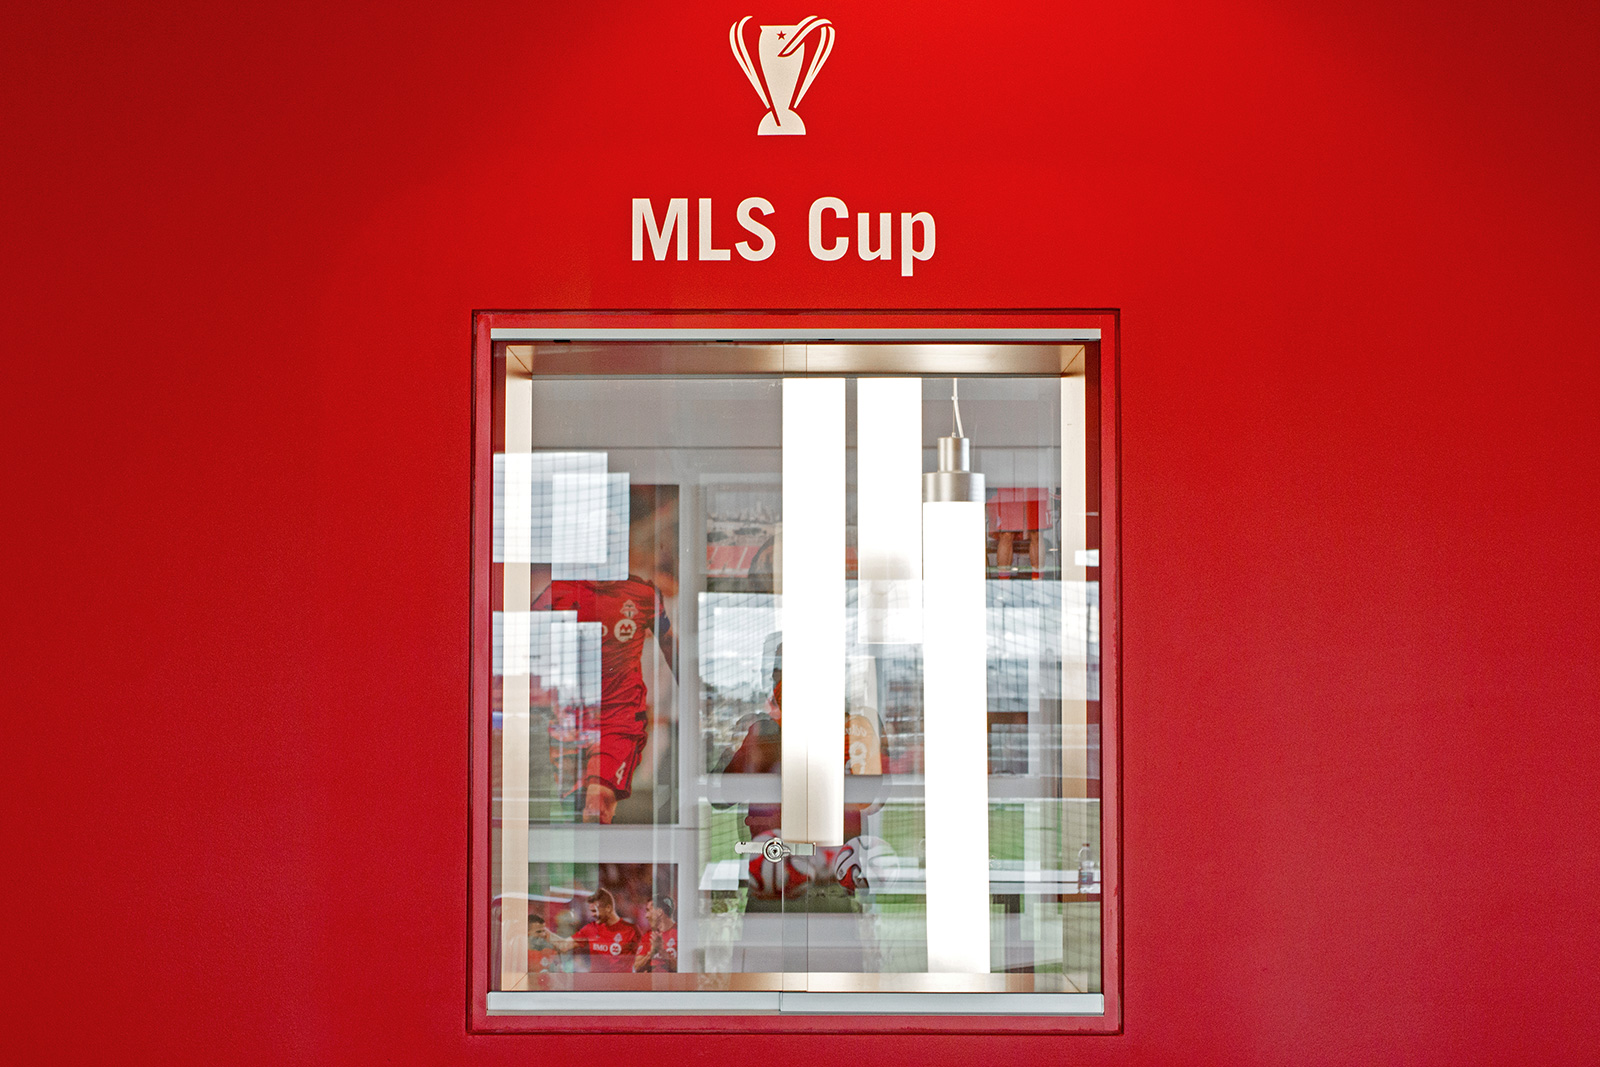 Where Toronto FC hopes to store the MLS Cup in their 2016 Playoff run. Photo by Dennis Marciniak